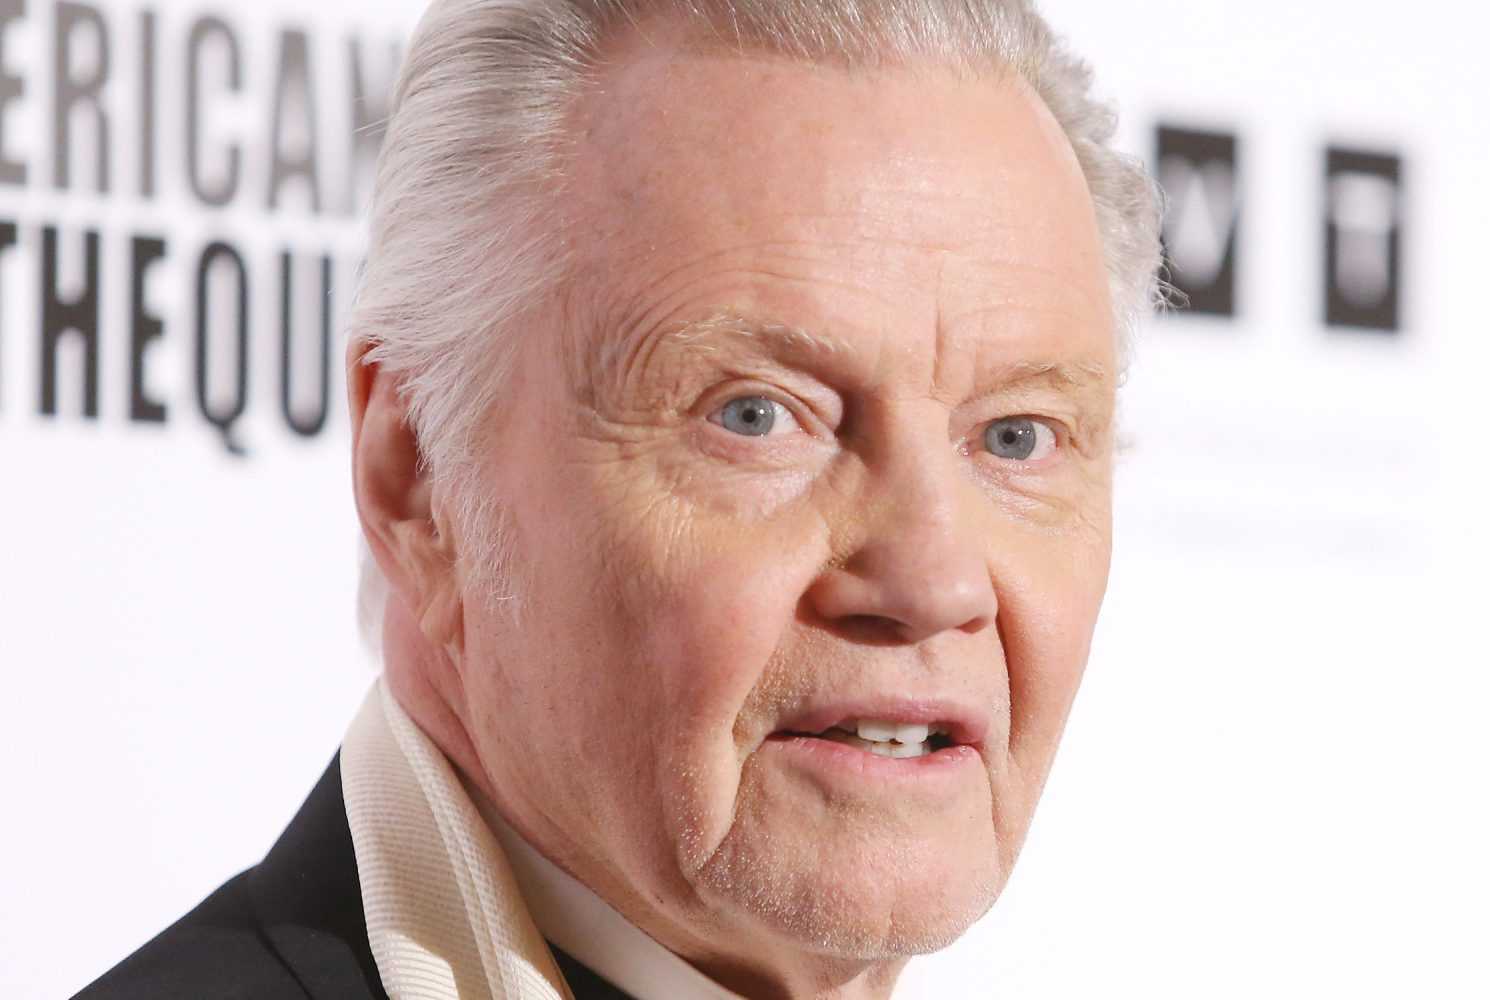 WATCH: Jon Voight rants about Miley Cyrus and Shia LaBoeuf committing anti-Trump 'treason'